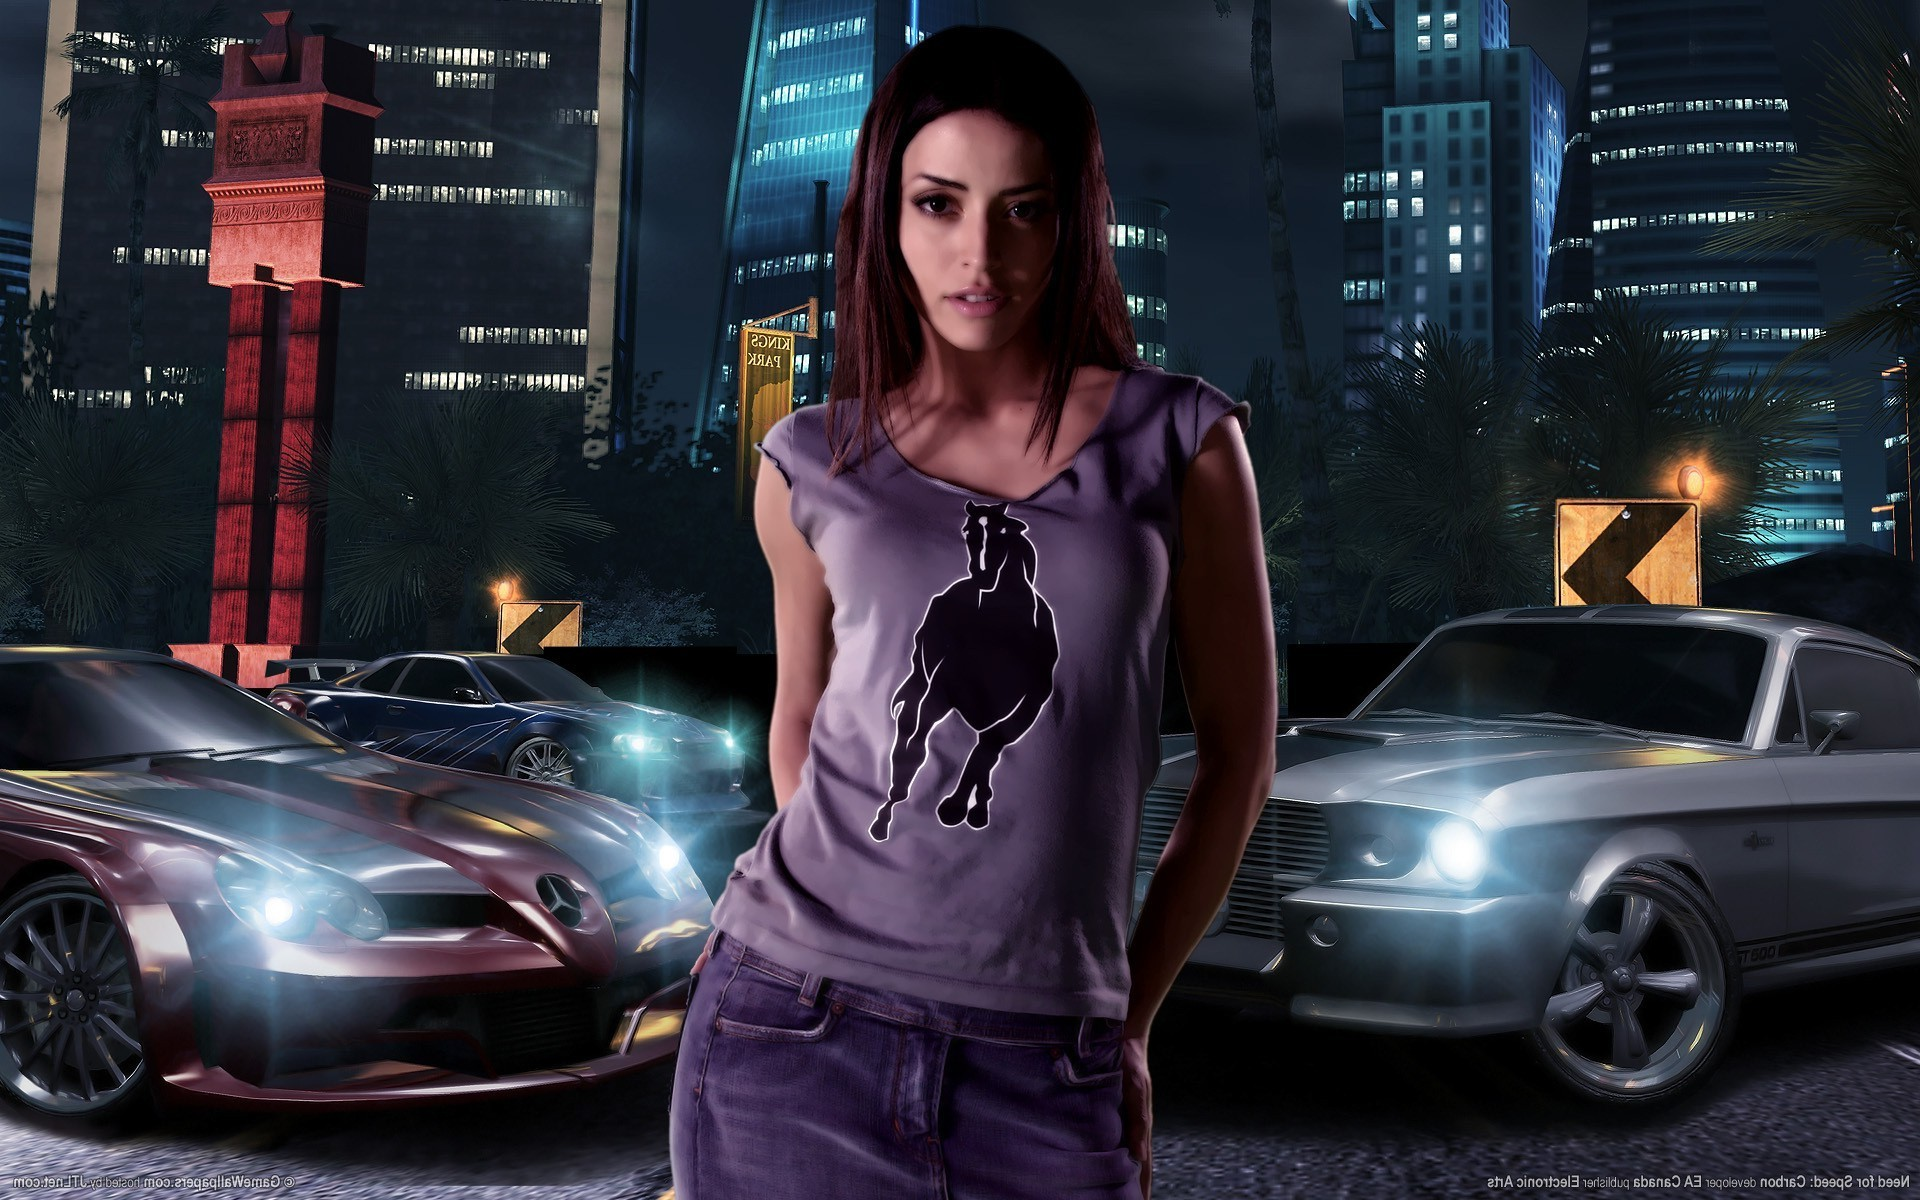 1920x1200 Need For Speed, Need For Speed: Carbon, Car, Vehicle, Video Games,  Emmanuelle Vaugier Wallpapers HD / Desktop and Mobile Backgrounds